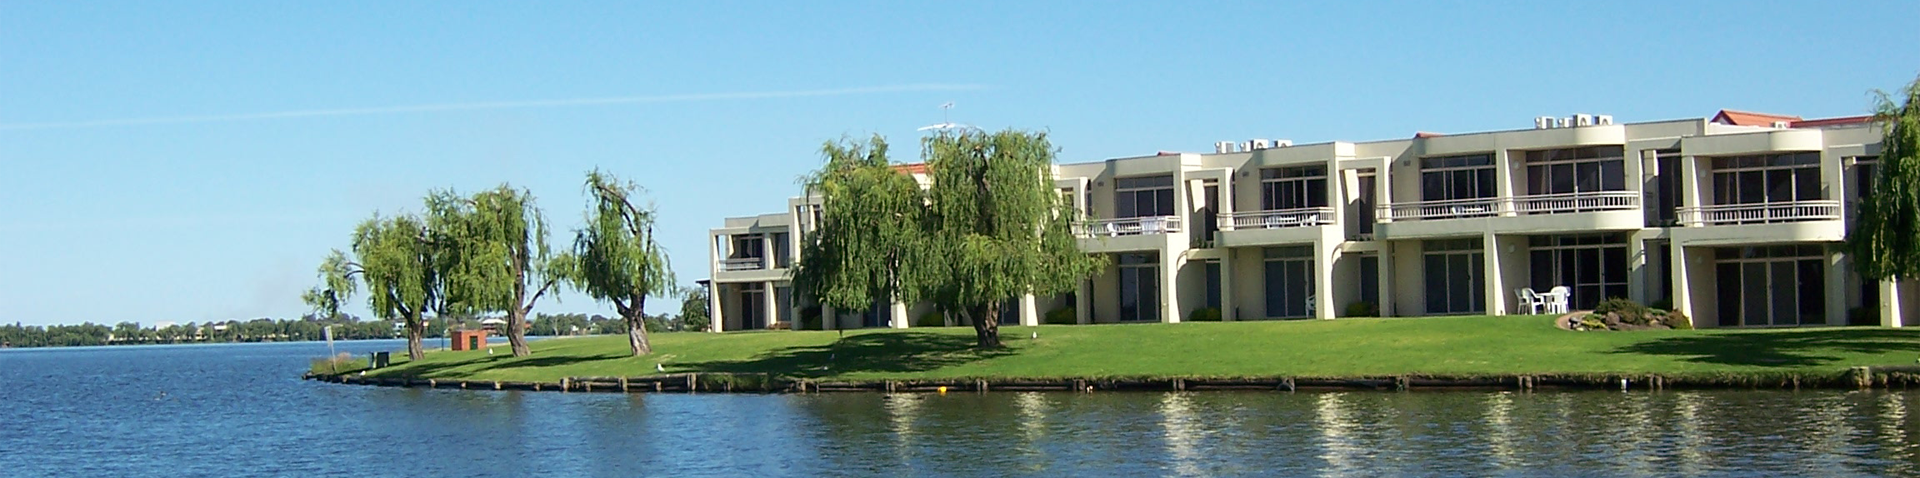 Yarrawonga Lakeside Apartments